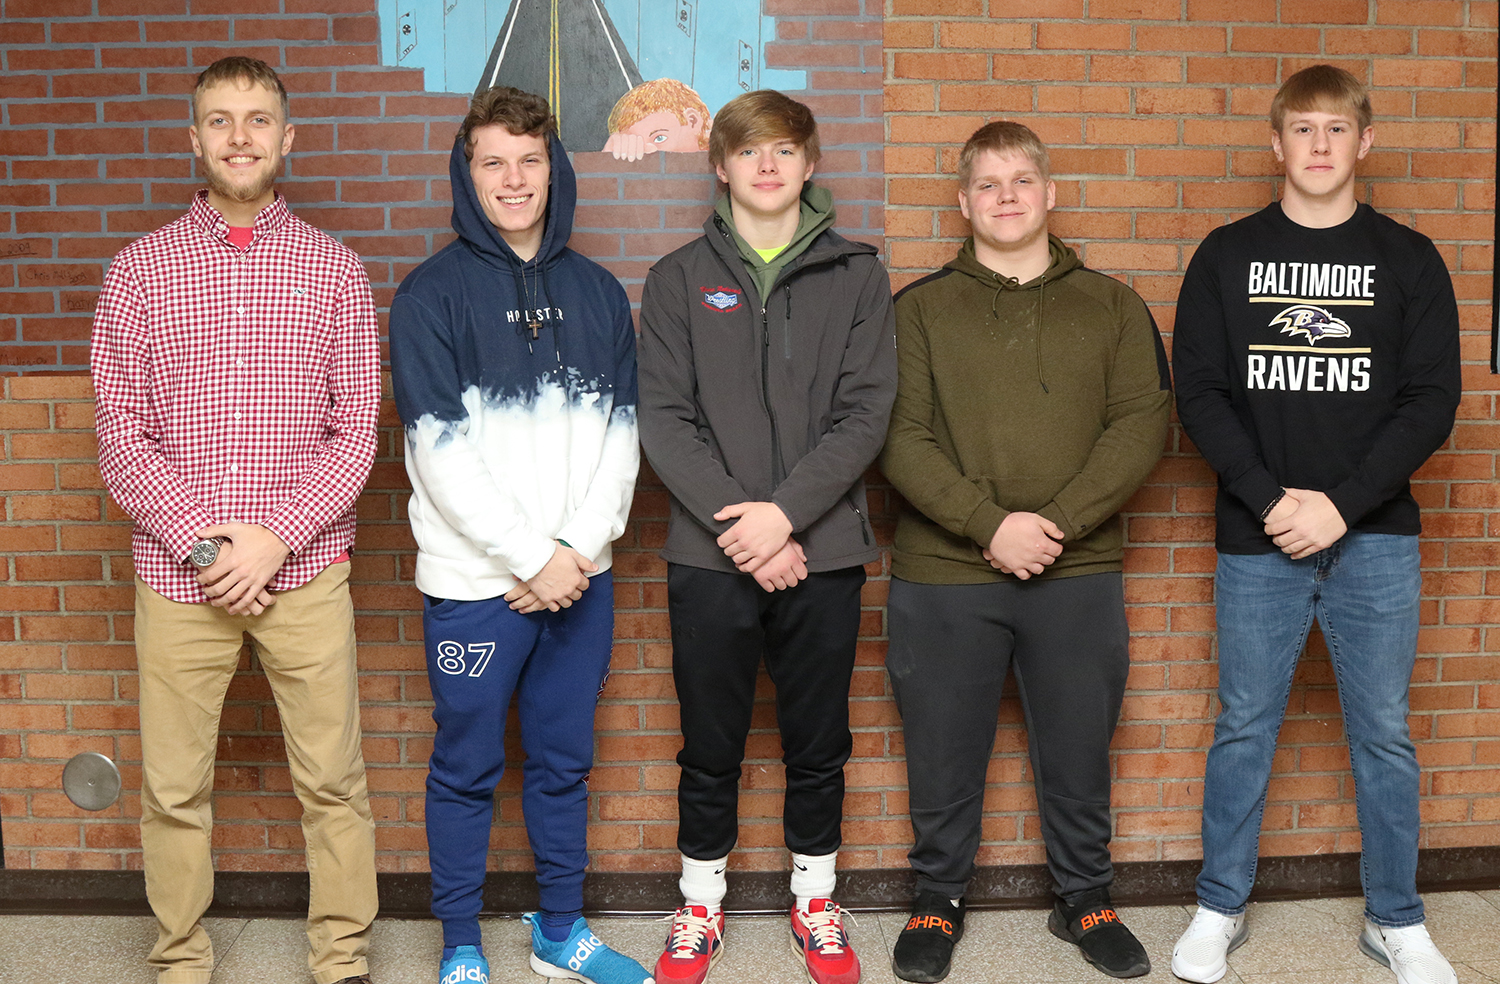 2019 All-state football team selections for Walton